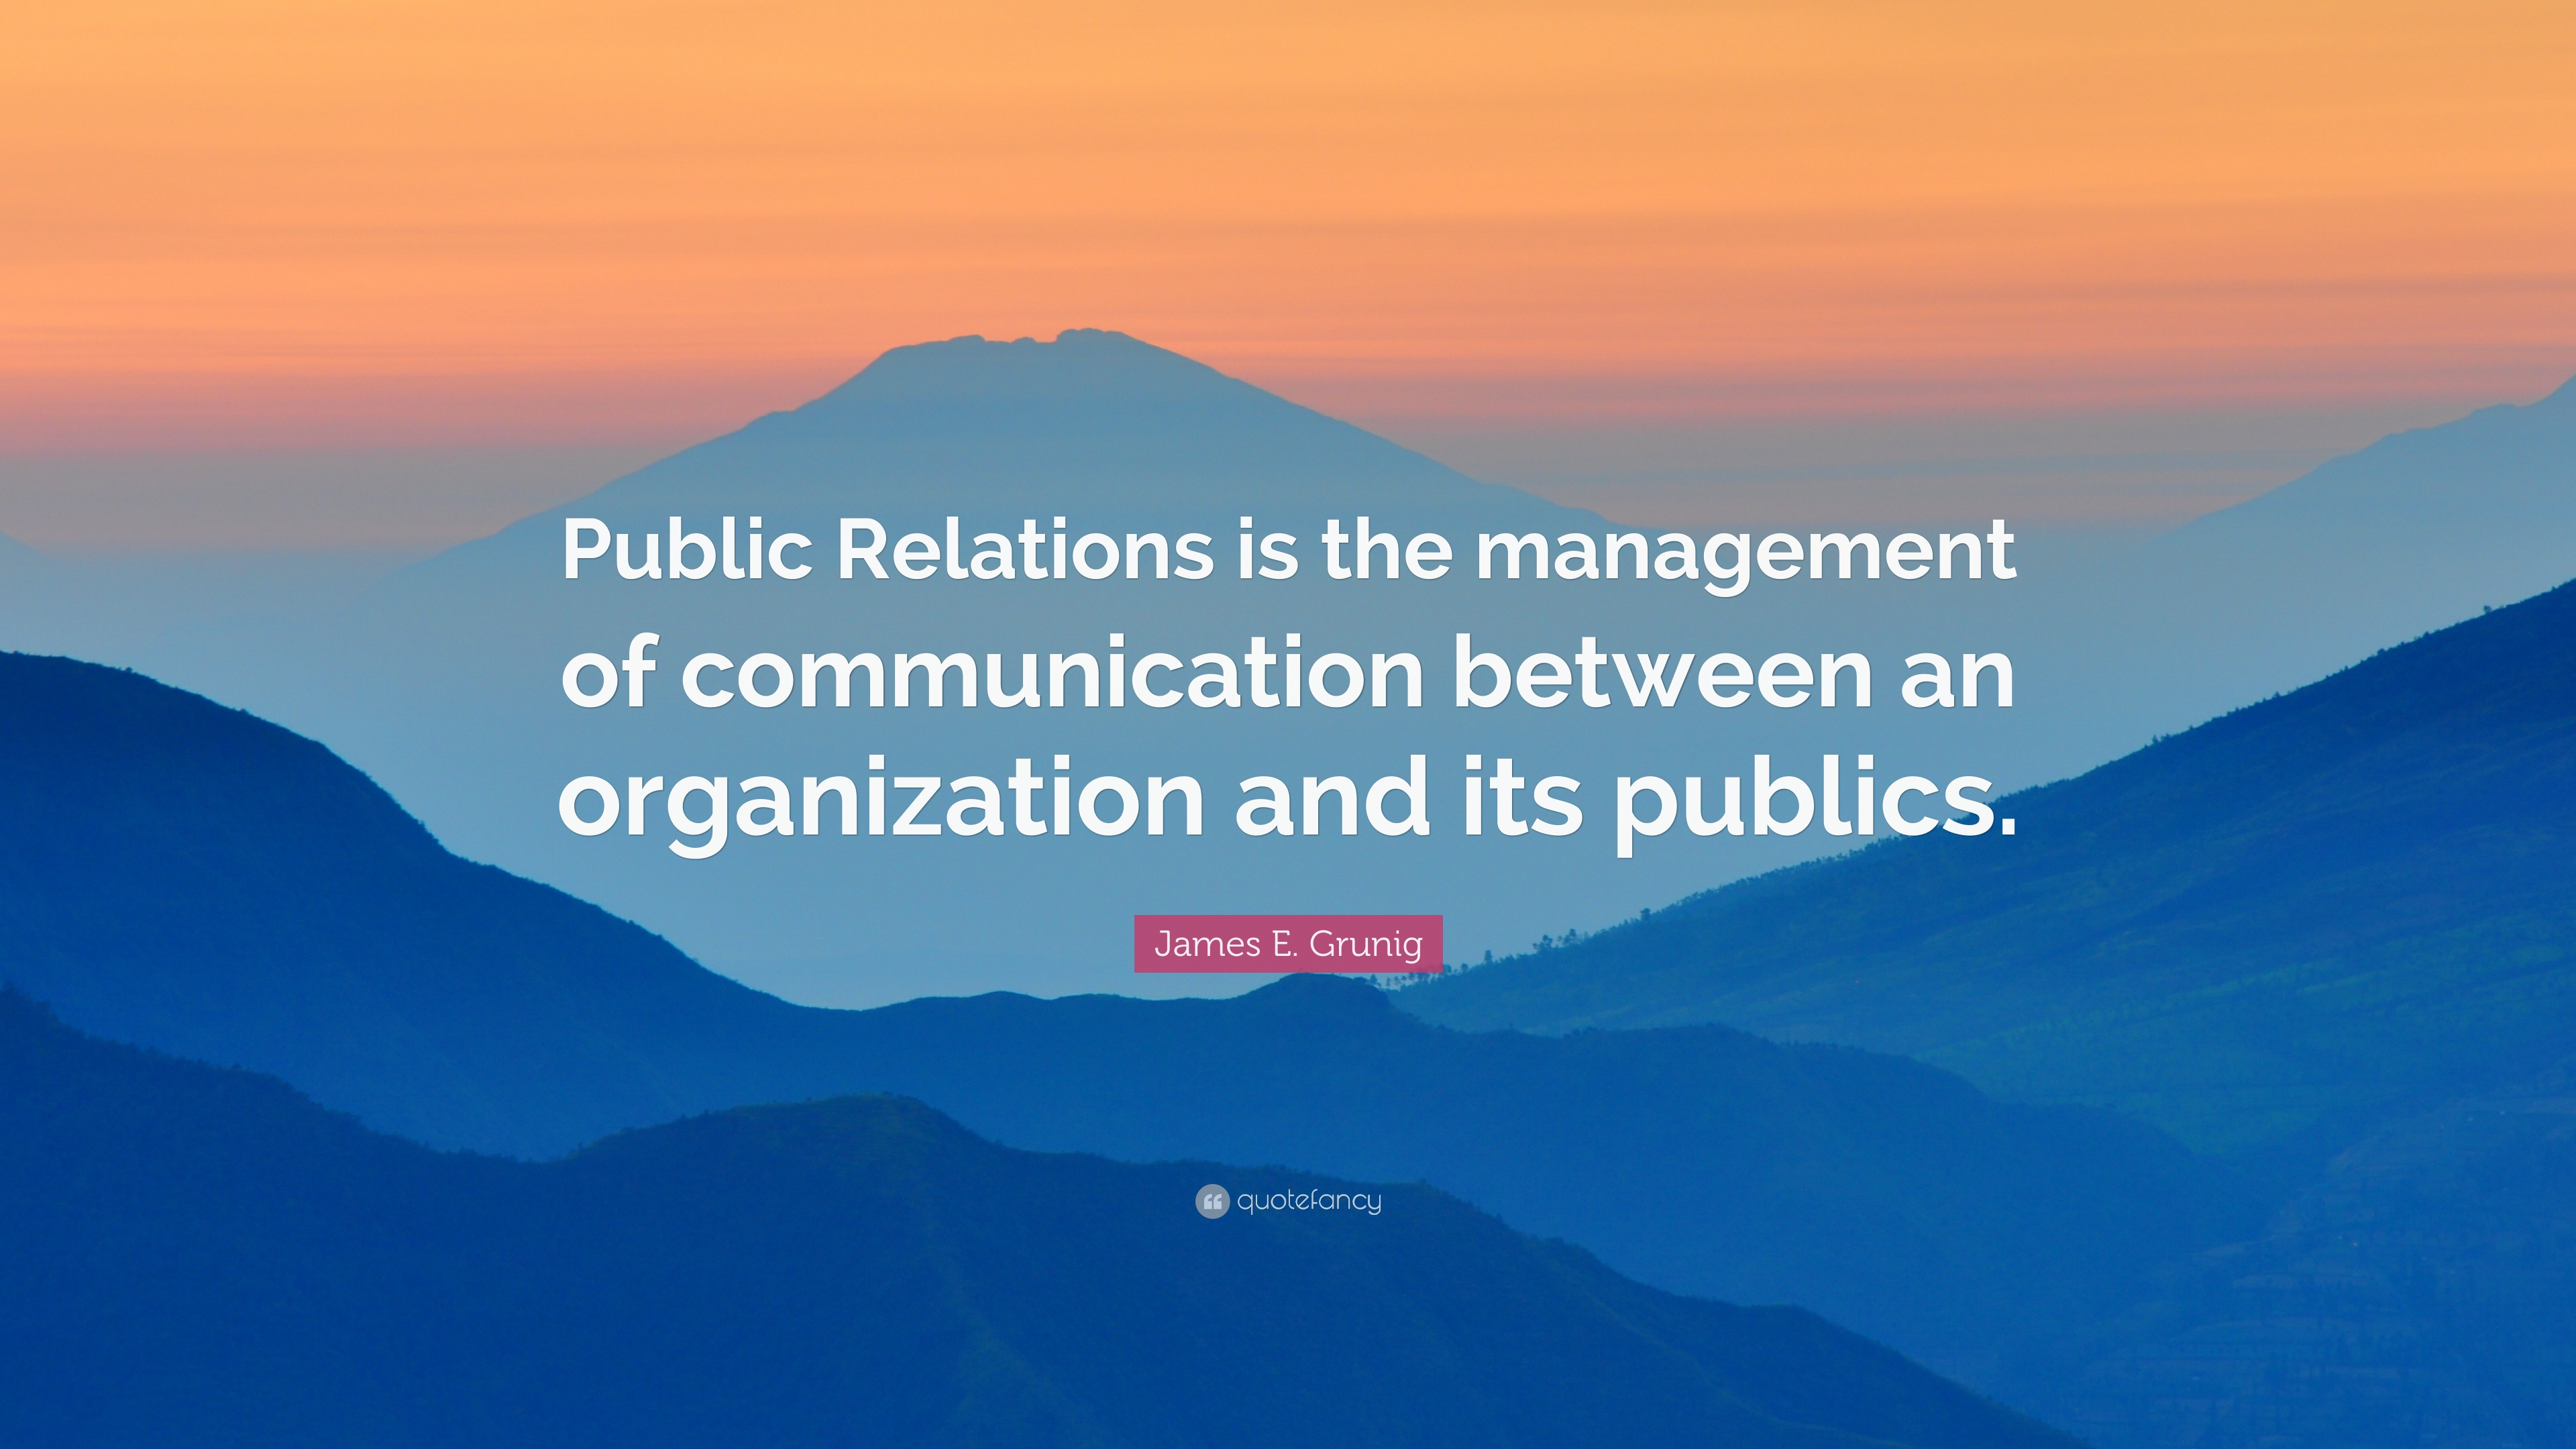 communication in organisation and its relations A digital strategy sits alongside an organisation's communications strategy and looks specifically at how the organisation can build its online presence this includes having an effective website, utilising social media, running online campaigns, and identifying what resources you should have online and for web marketing.